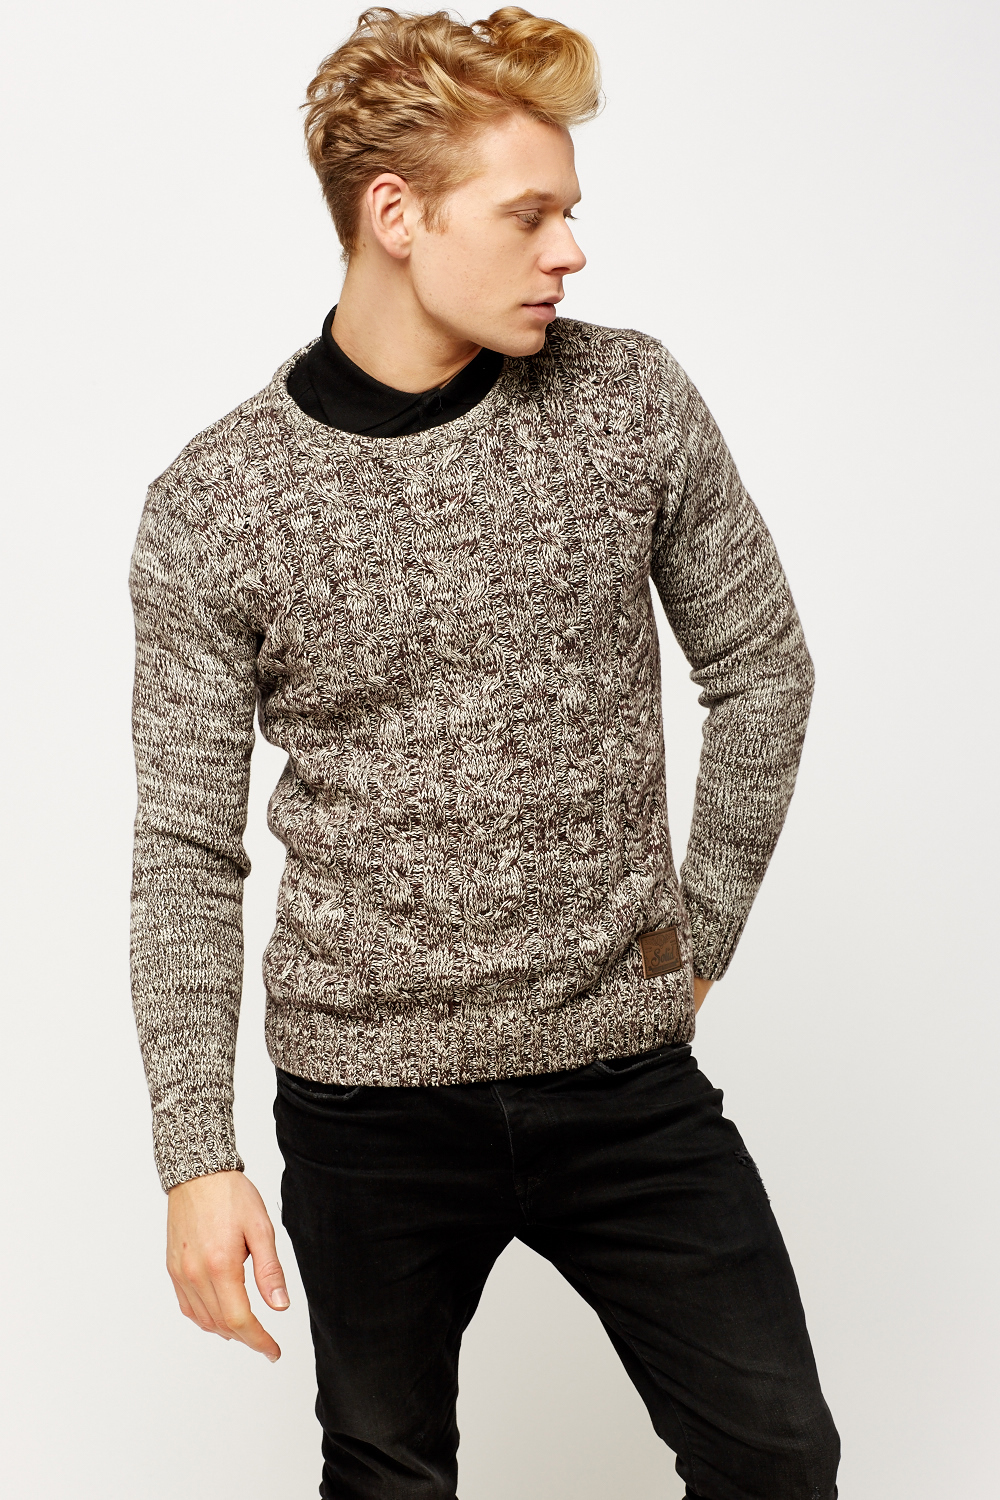 About Aran Sweater Market History of Aran Sweaters Irish Sweaters Our Collections St. Patrick's Day Aran Trade & Bulk Discounts Store Locations Search All prices are in USD.